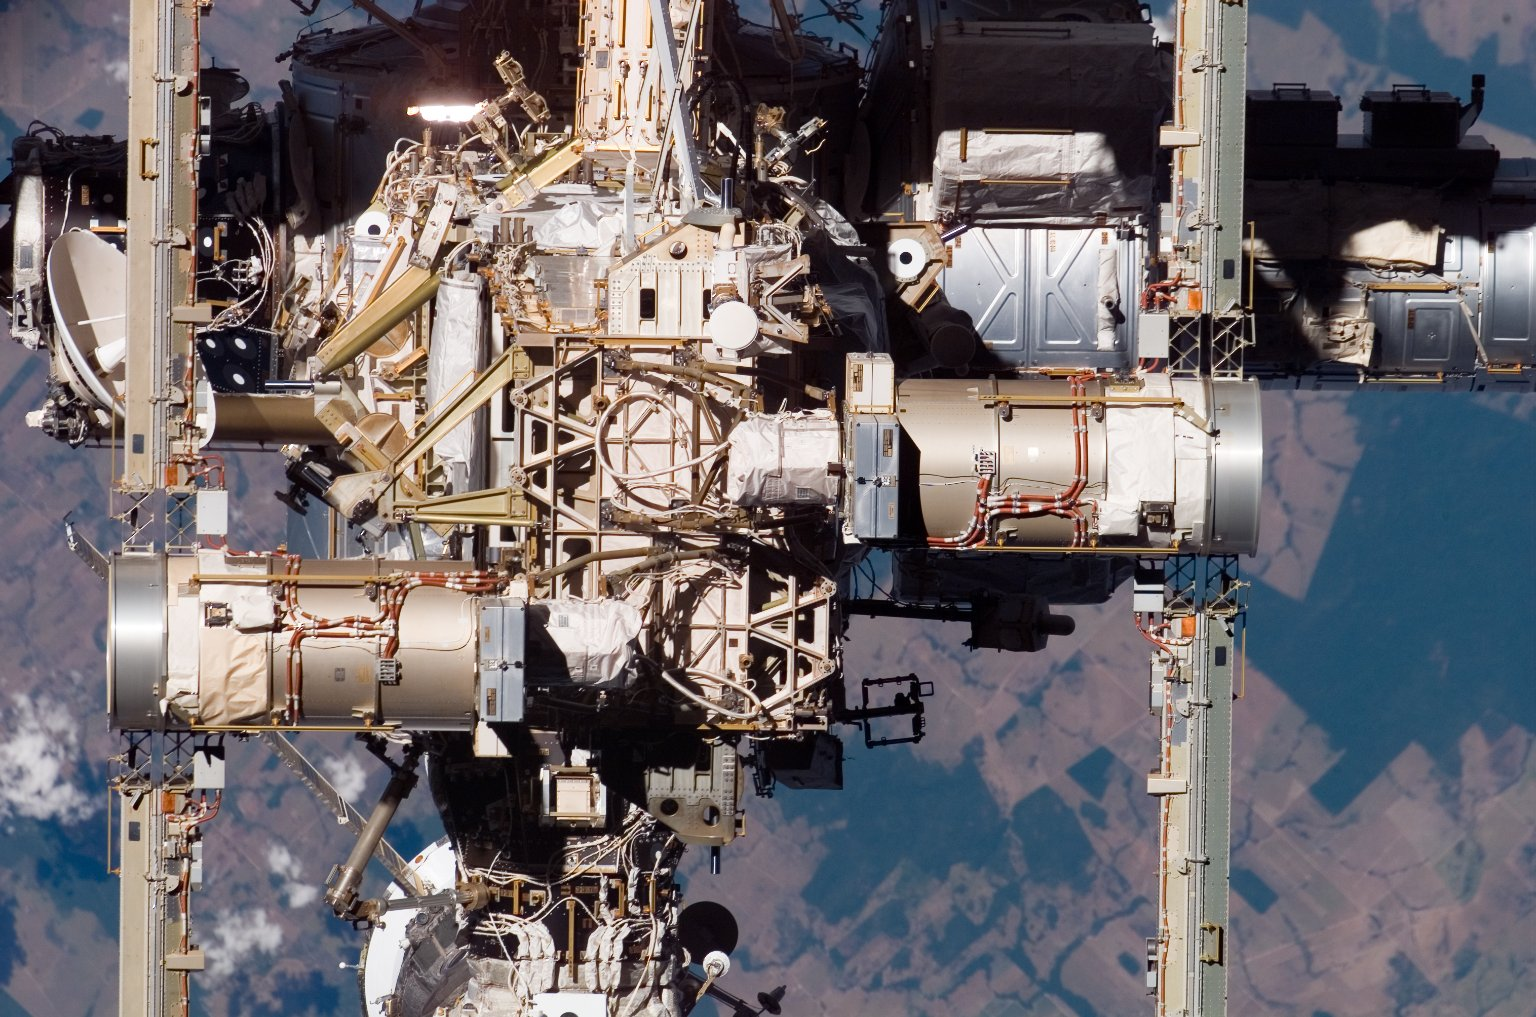 FWD and Zenith Sides of the P6 / Z1 Trusses, and A/L on the ISS during STS-117 Mission